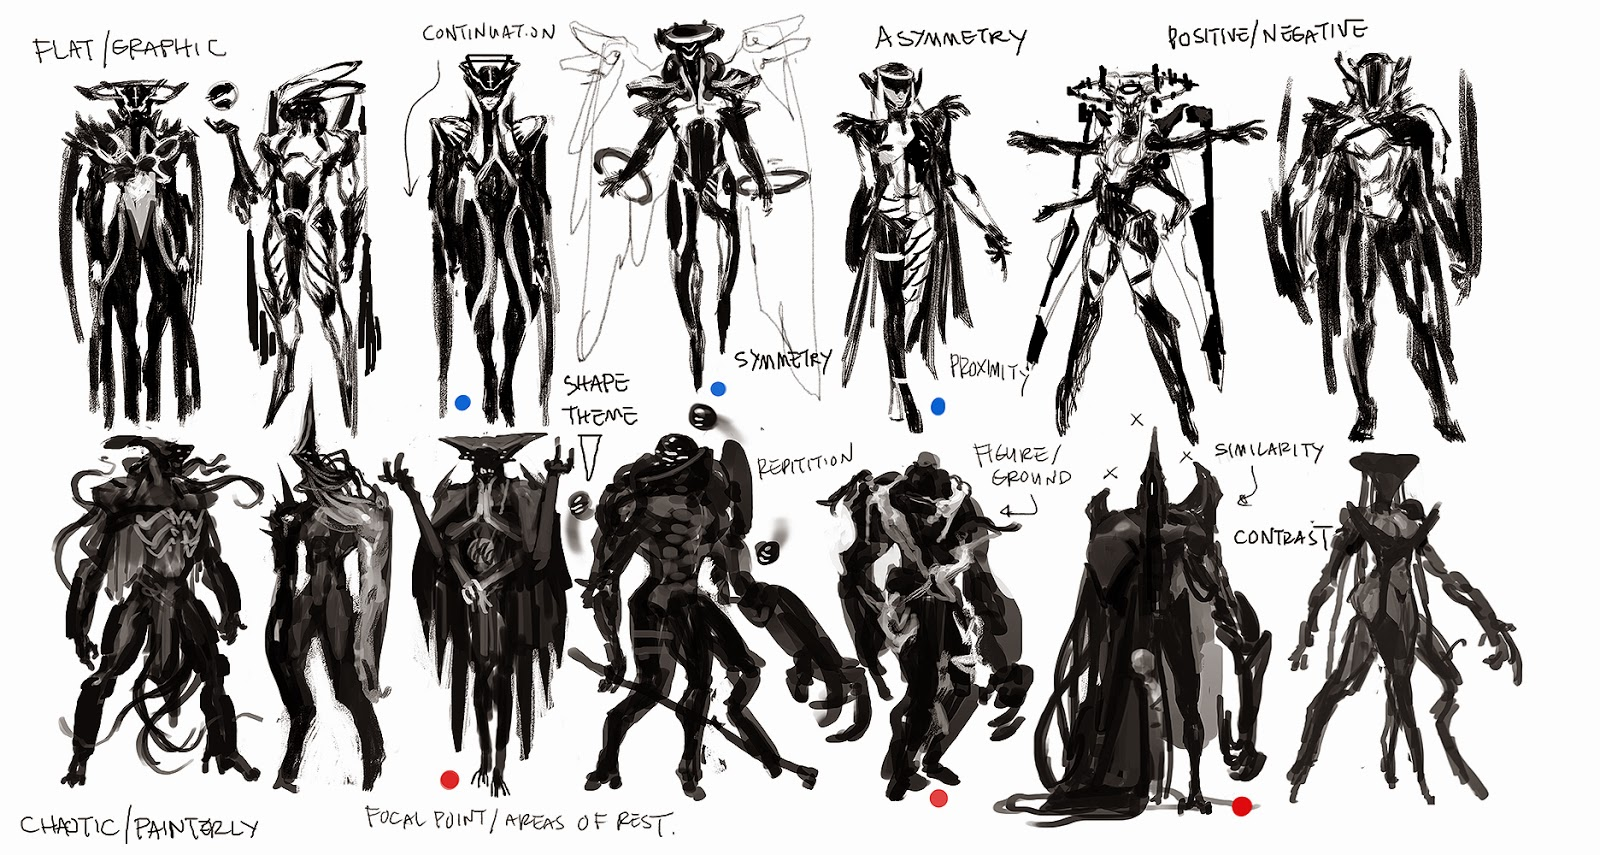 Character Conceptual Design : Cireisdead character design at otis demos and lecture stuff